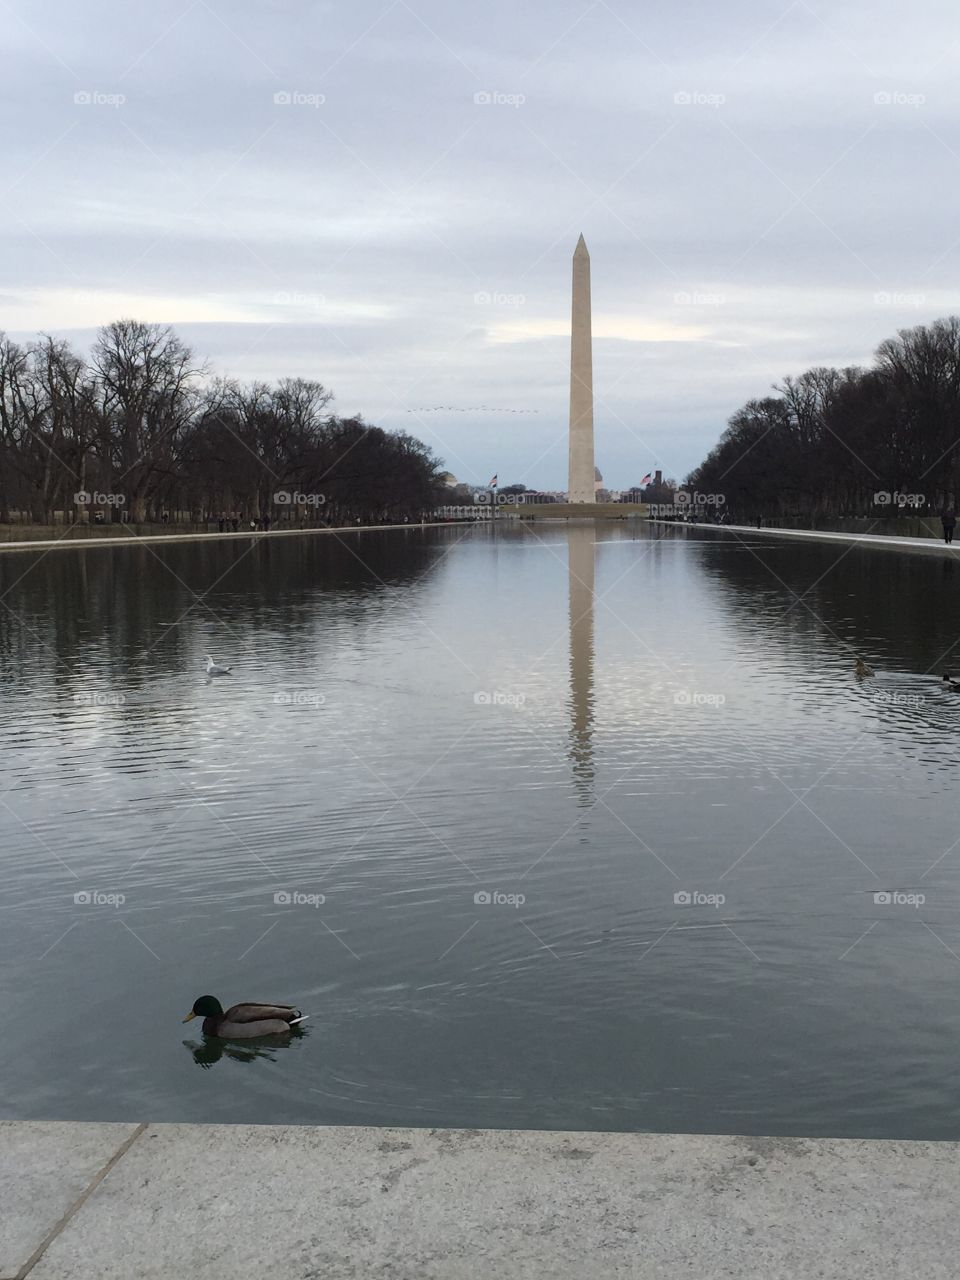 Washington Monument and Reflection Pool. Washington Monument with a duck swimming in the Reflection Pool.